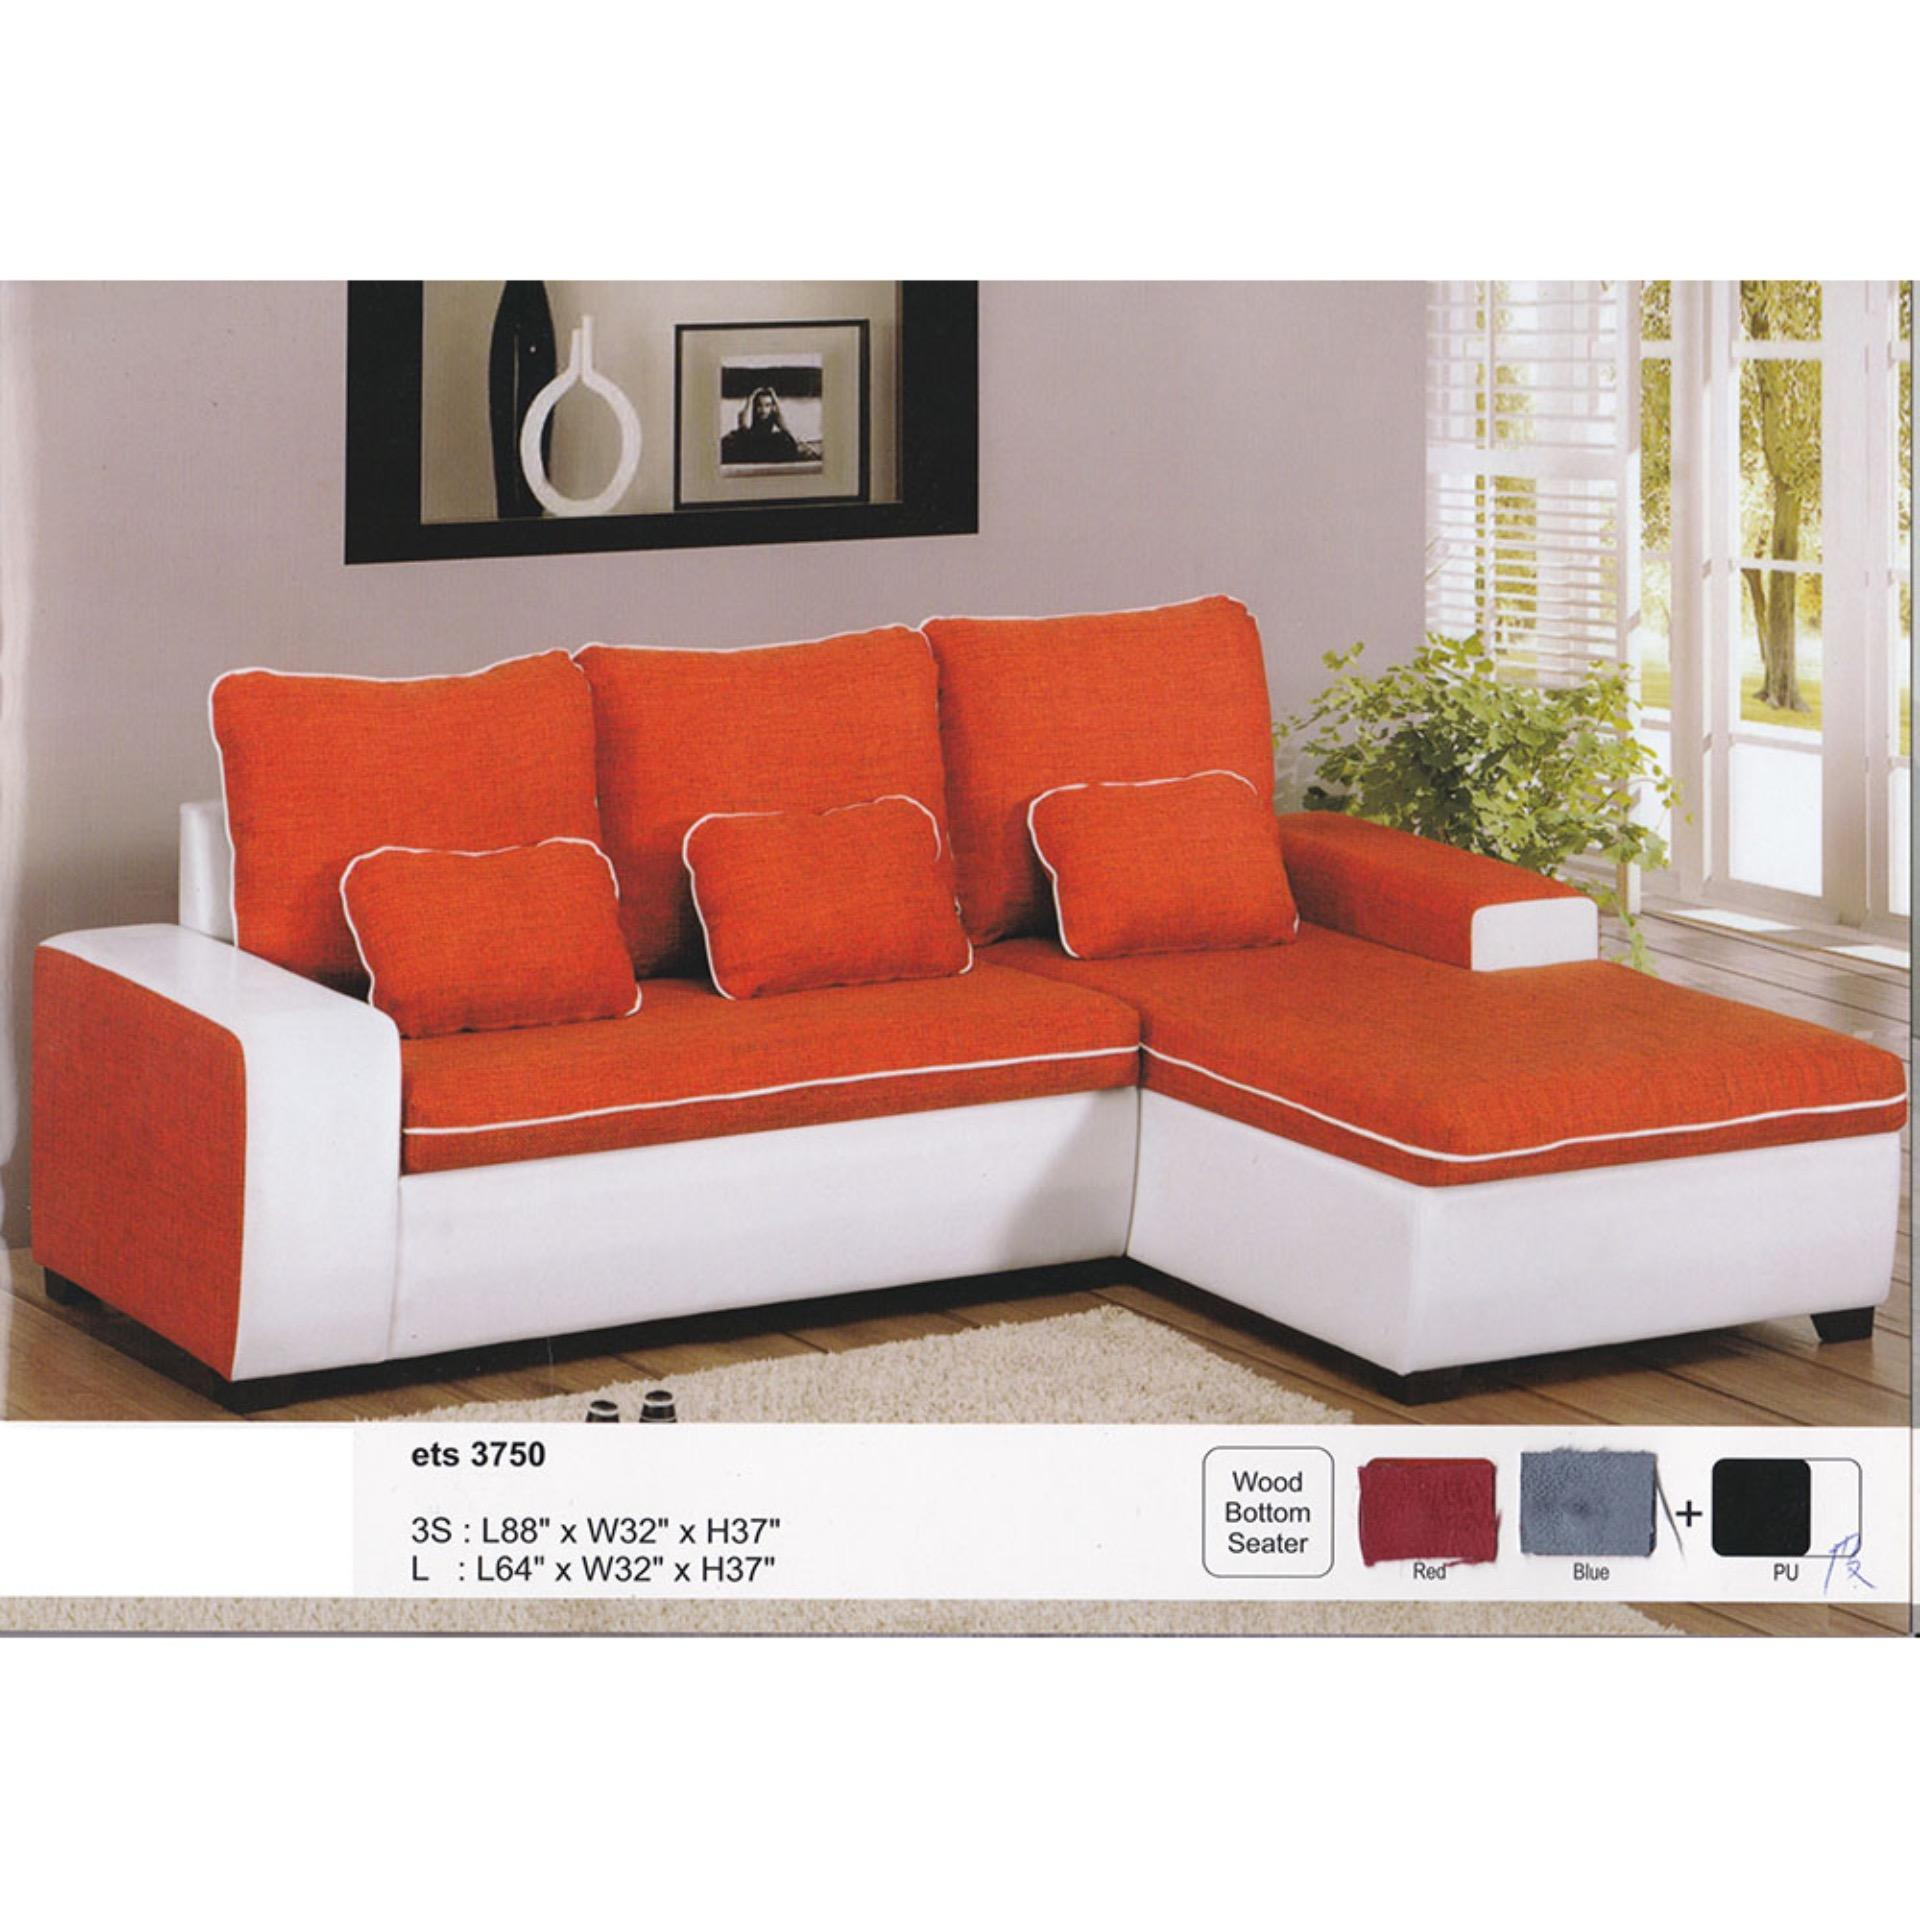 L-Shape Fully Water Resistant Fabric Sofa (Orange Color)